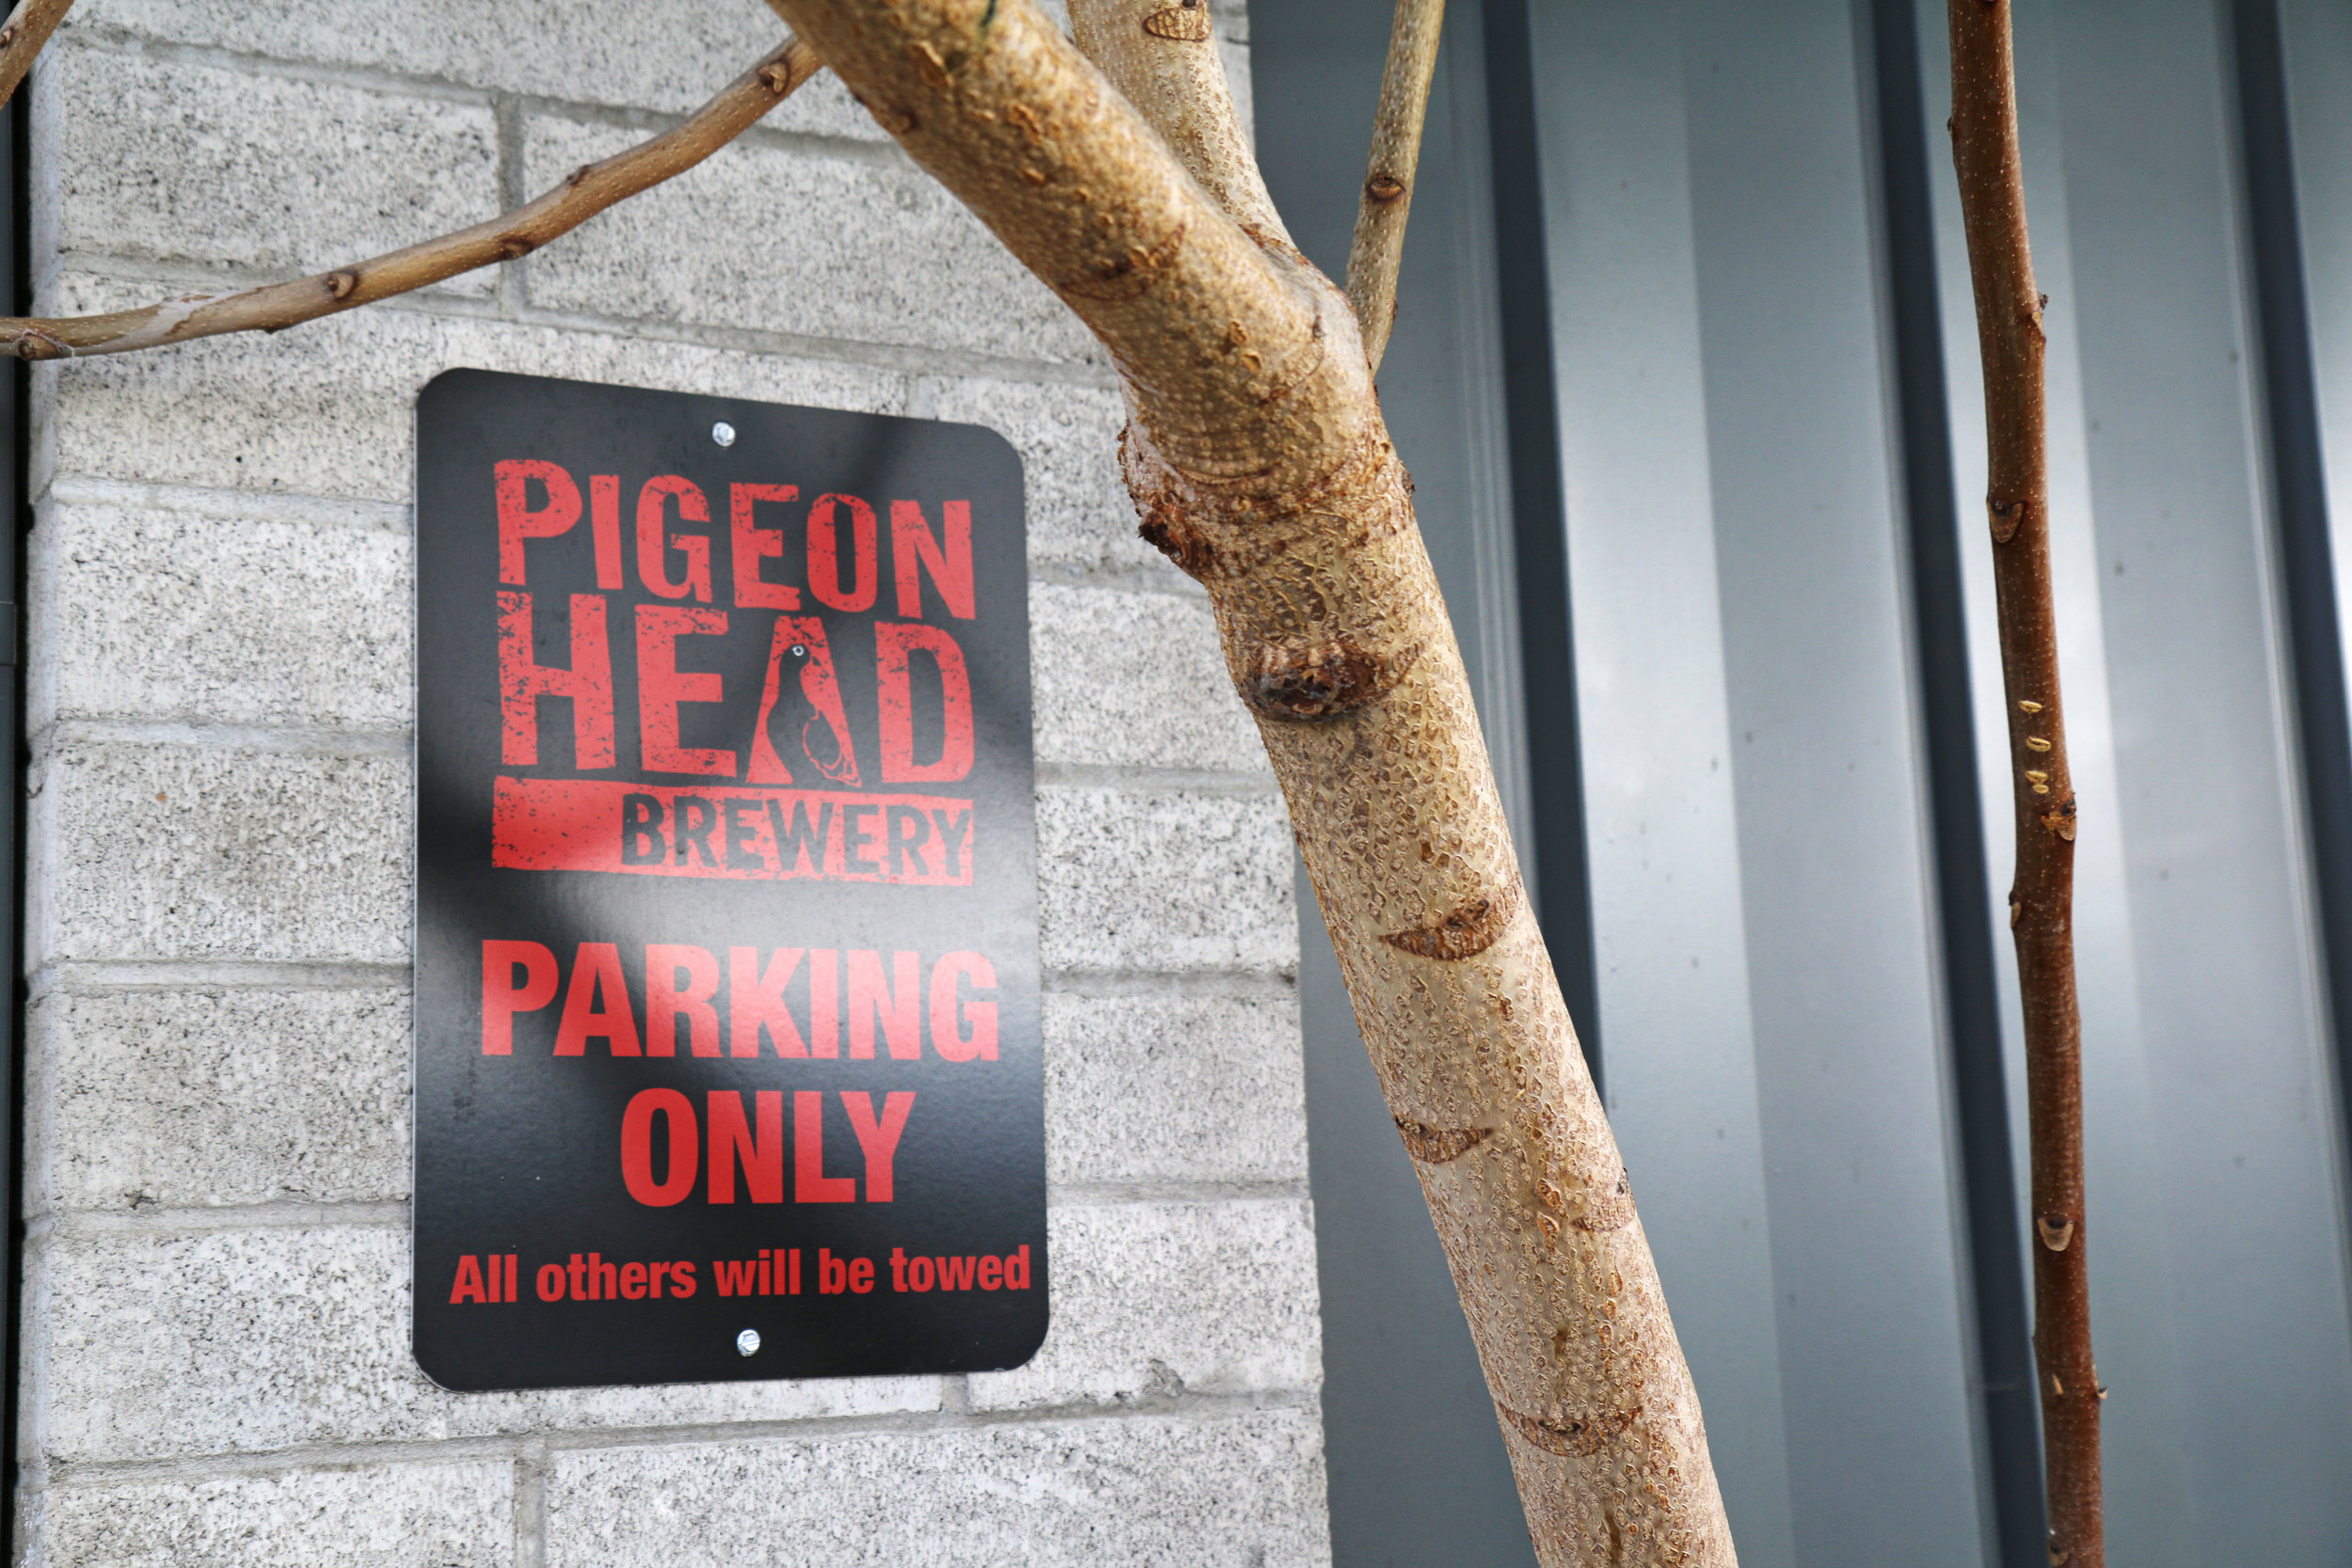 Pigeon Head Brewery in Reno, Nevada